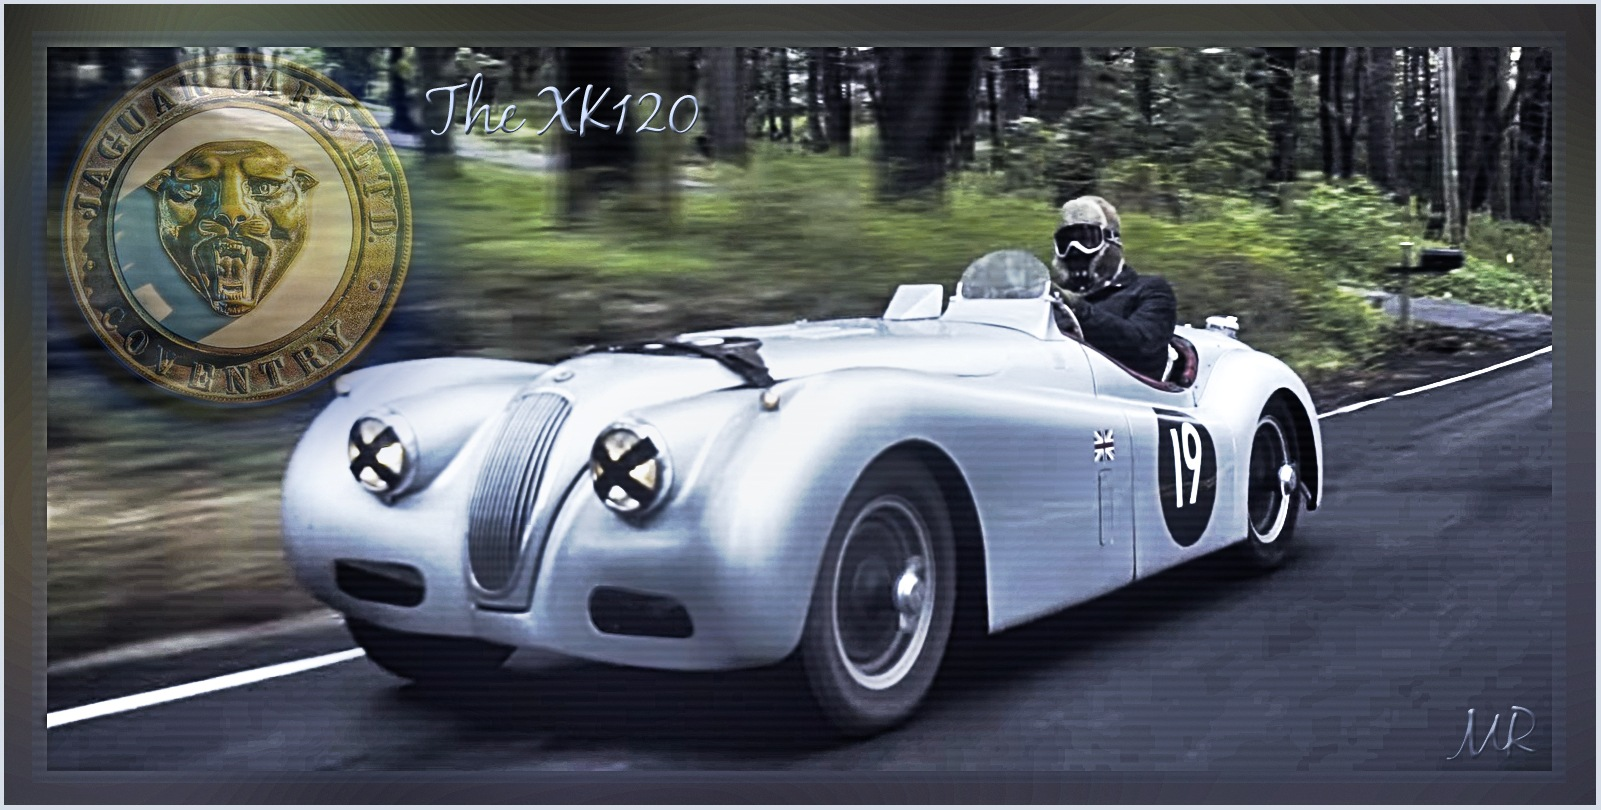 The Jaguar XK120 by Mikael Rennerhorn